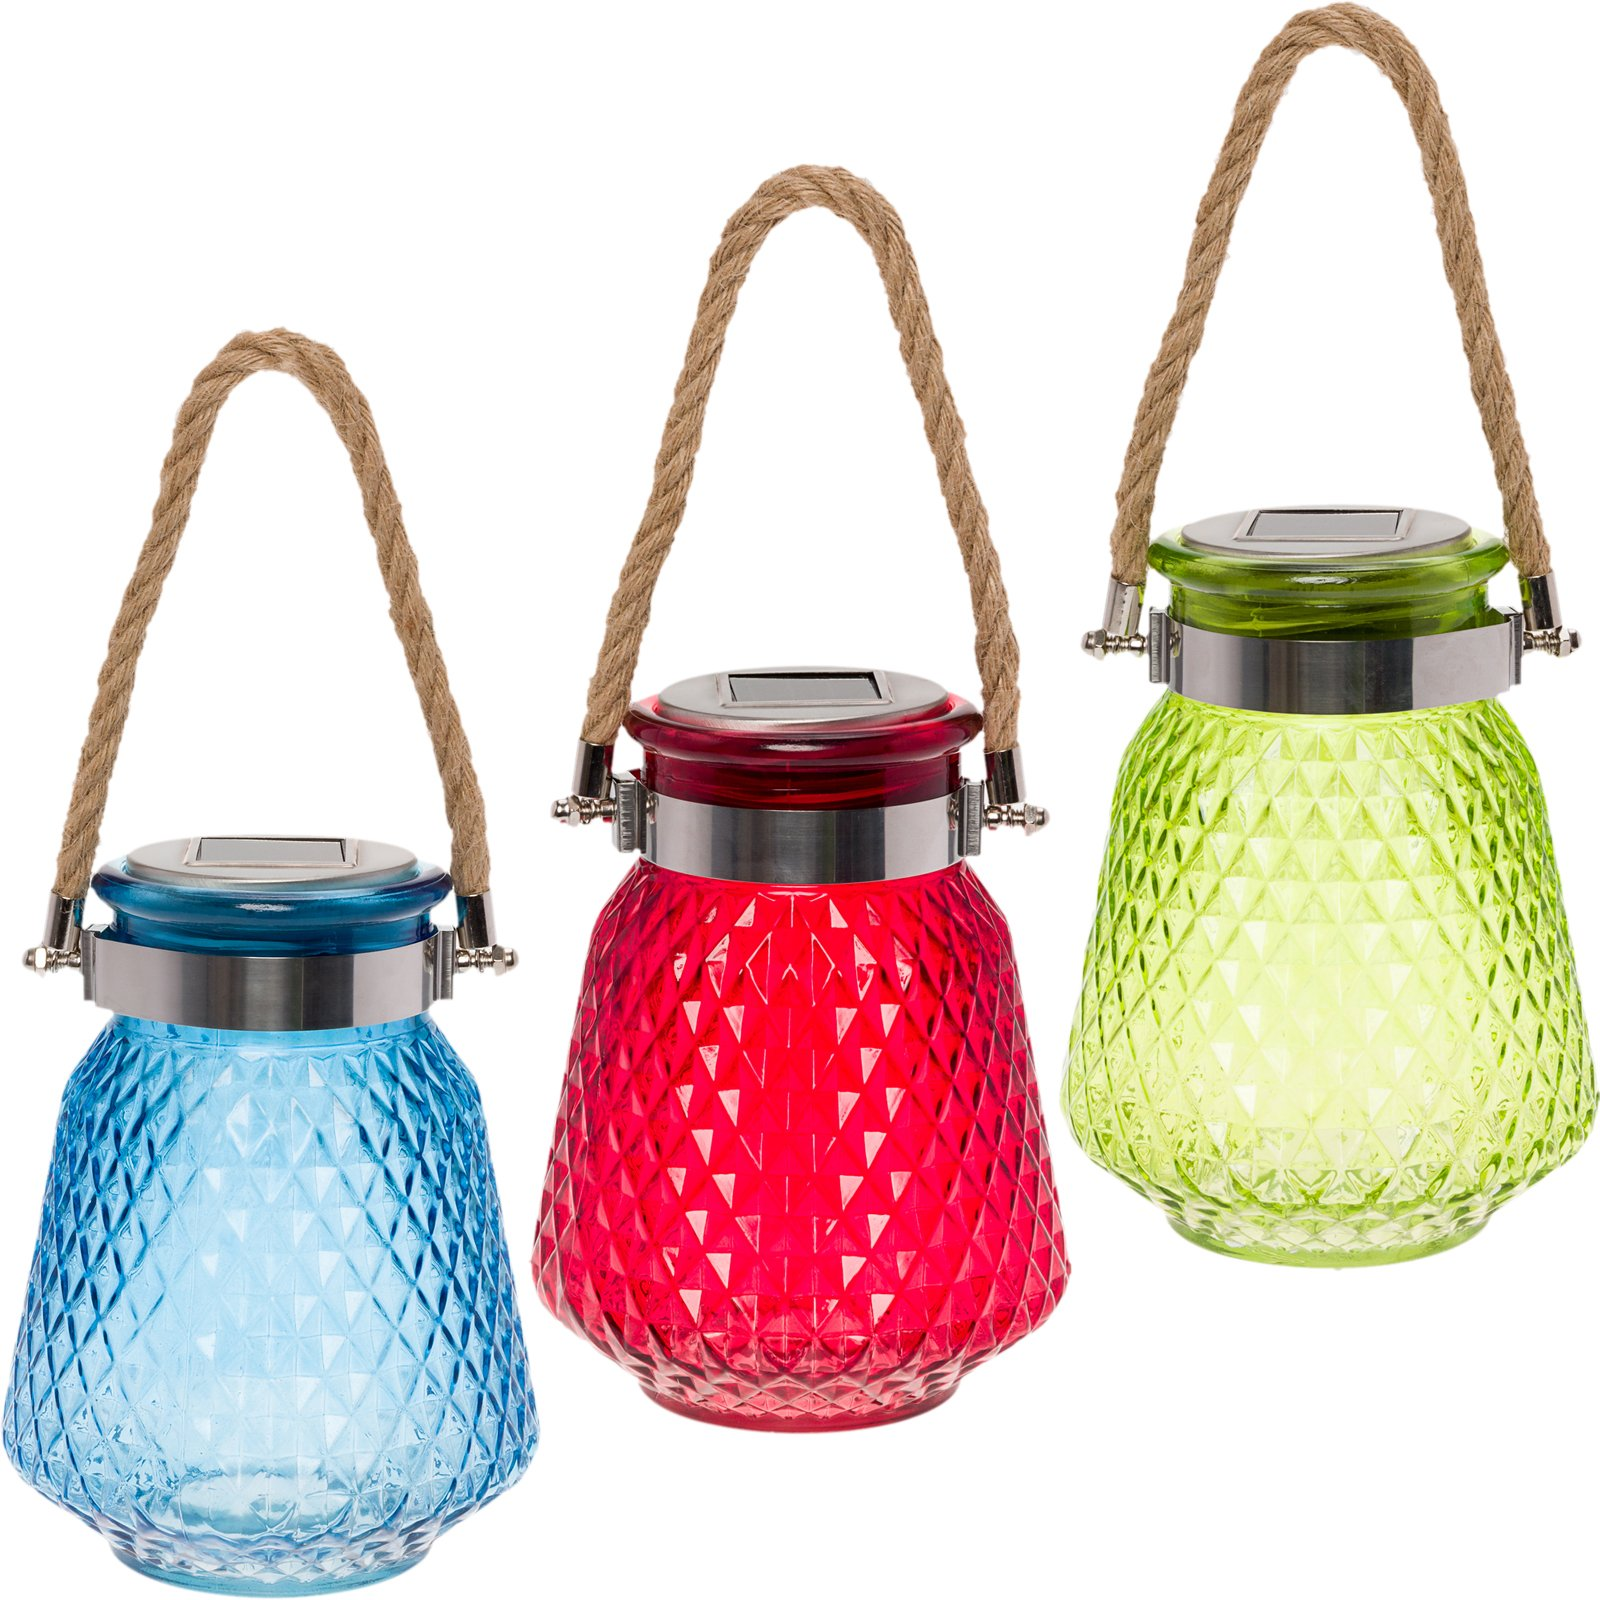 GreenLighting 3 Pack Solar Powered Mason Jar Light - Decorative LED Glass Table Light by (Green, Blue & Red)